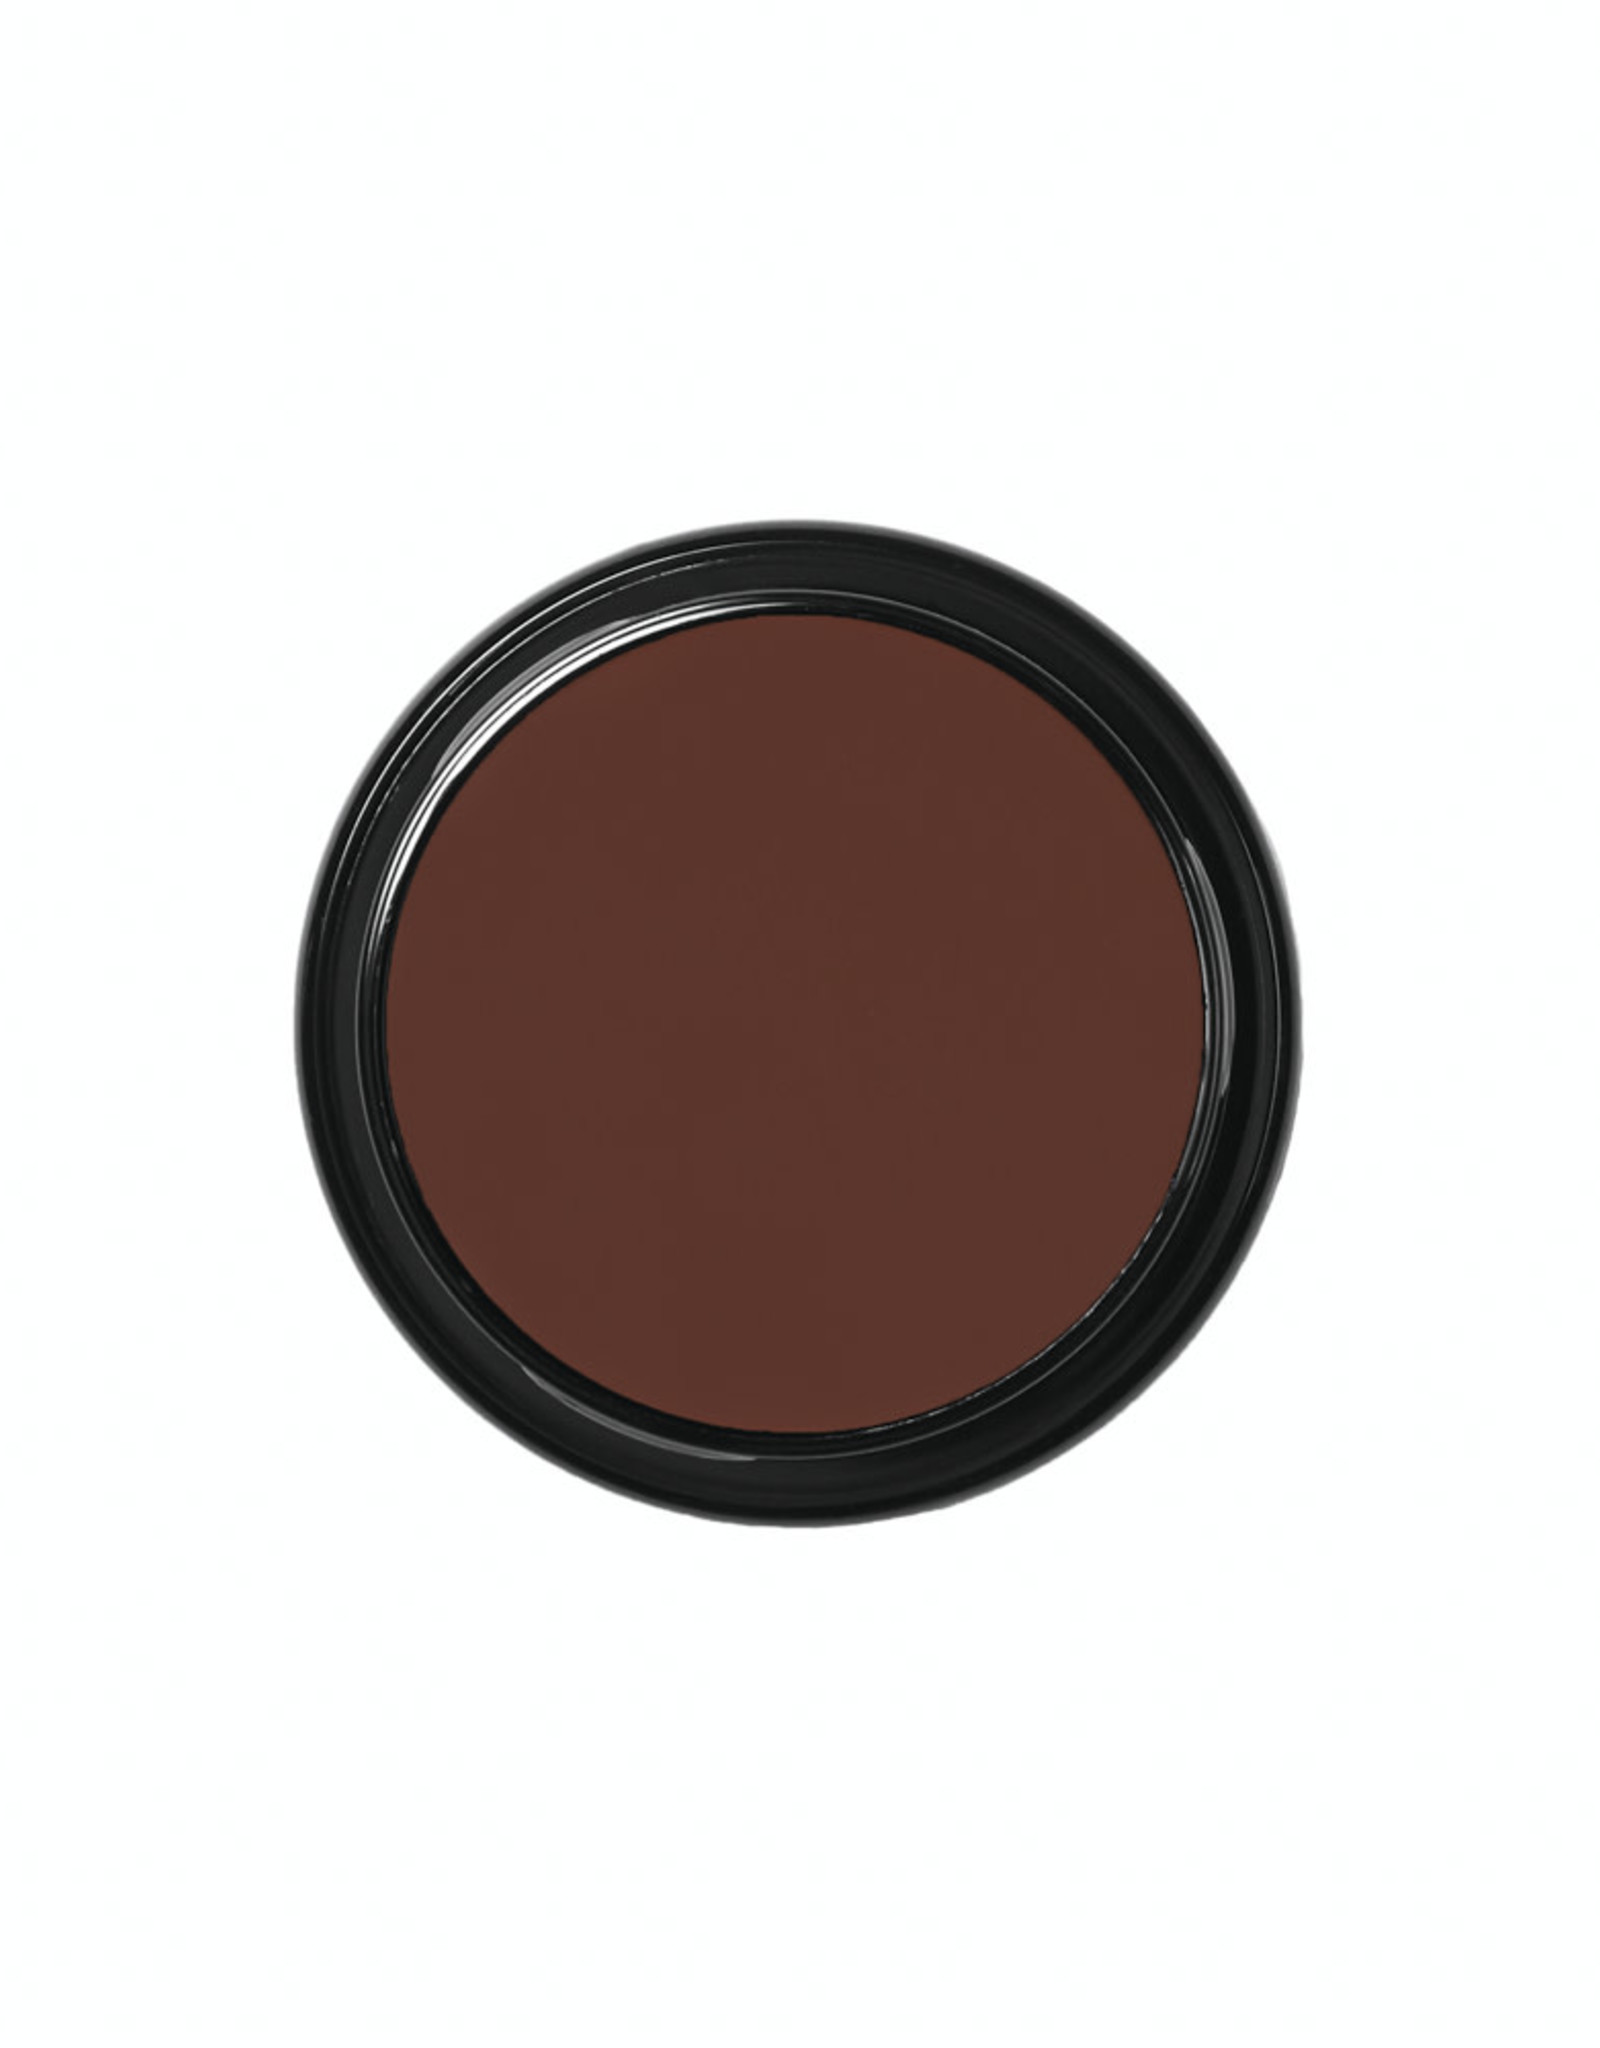 Ben Nye FX SHADOW-CREME, DARK BROWN, .25 OZ